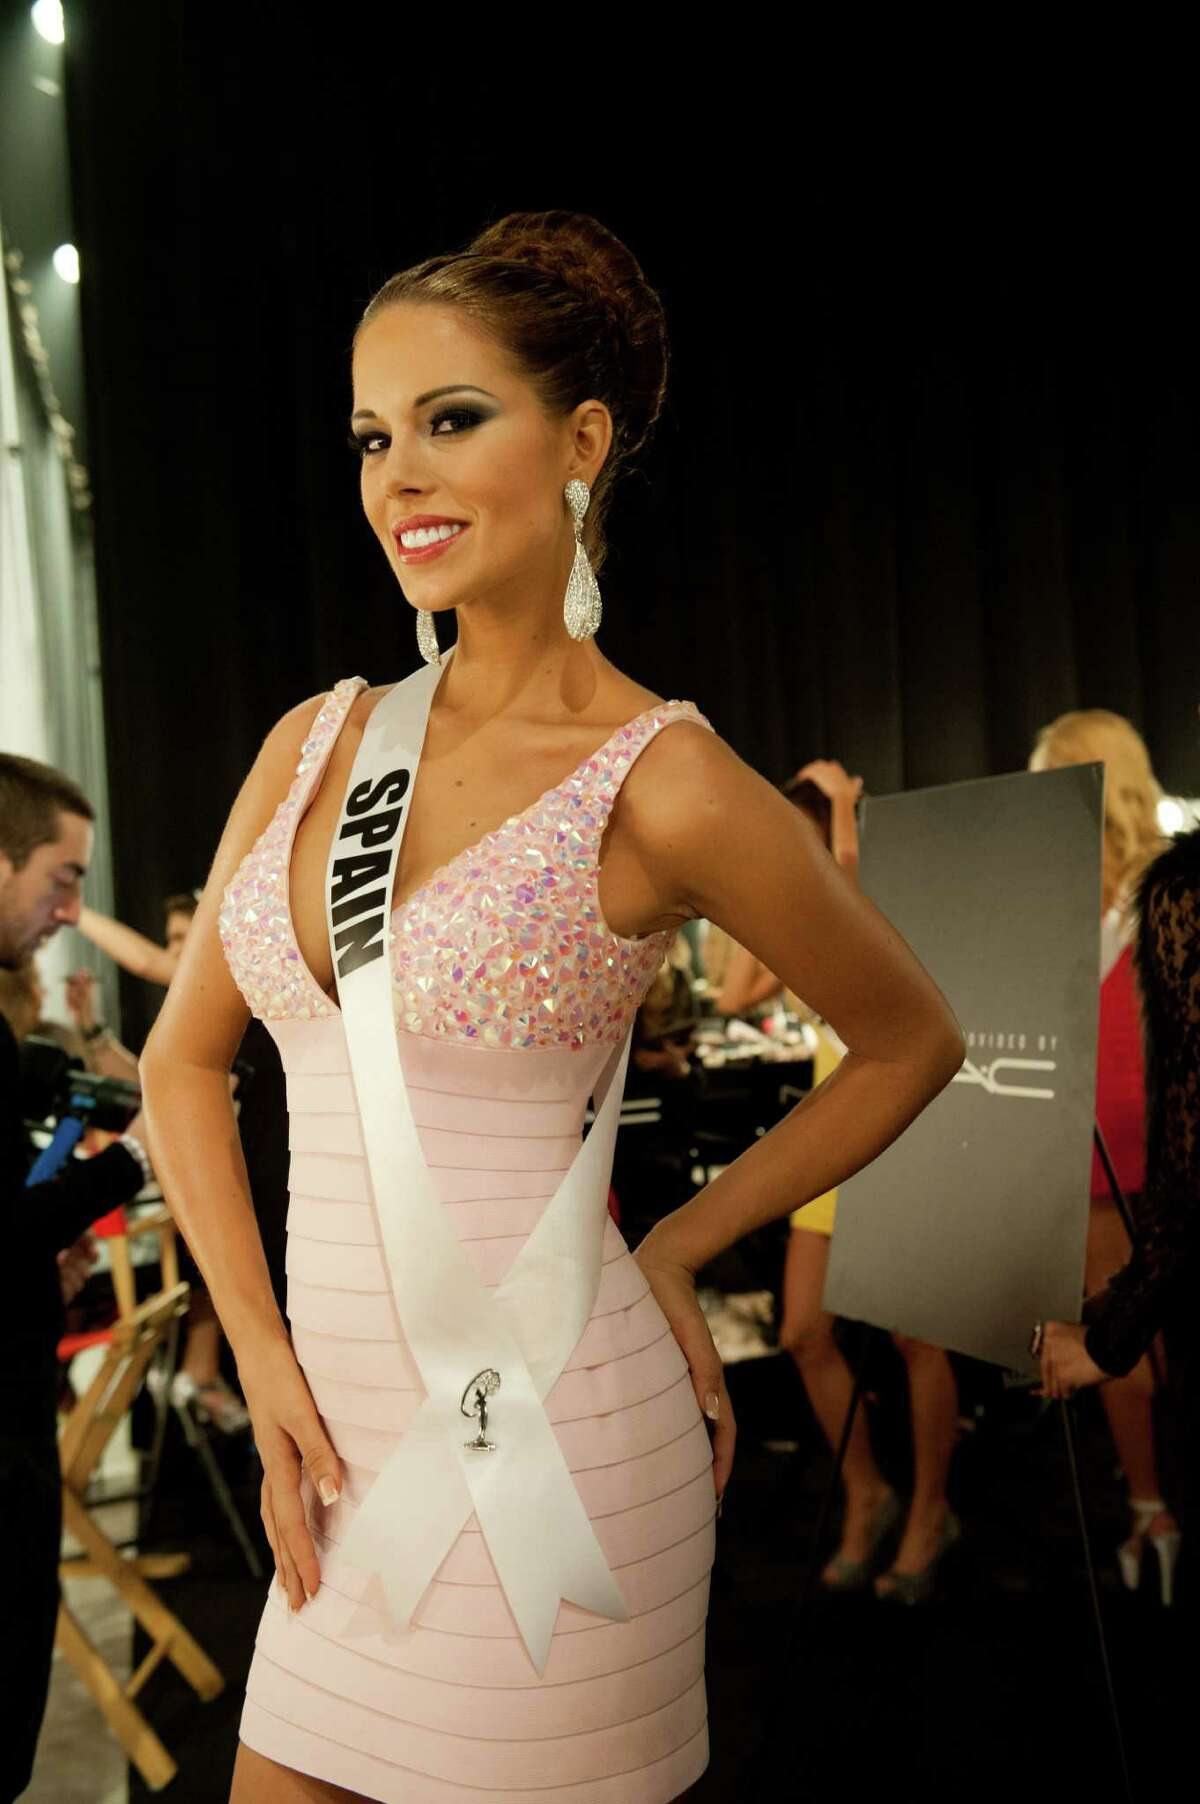 Miss Spain, Andrea Huisgen, poses backstage during Wednesday night's live telecast of the 2012 Miss Universe Competition at Planet Hollywood Live in Las Vegas. Miss USA Olivia Culpo was named the 61st Miss Universe at the conclusion of the telecast.